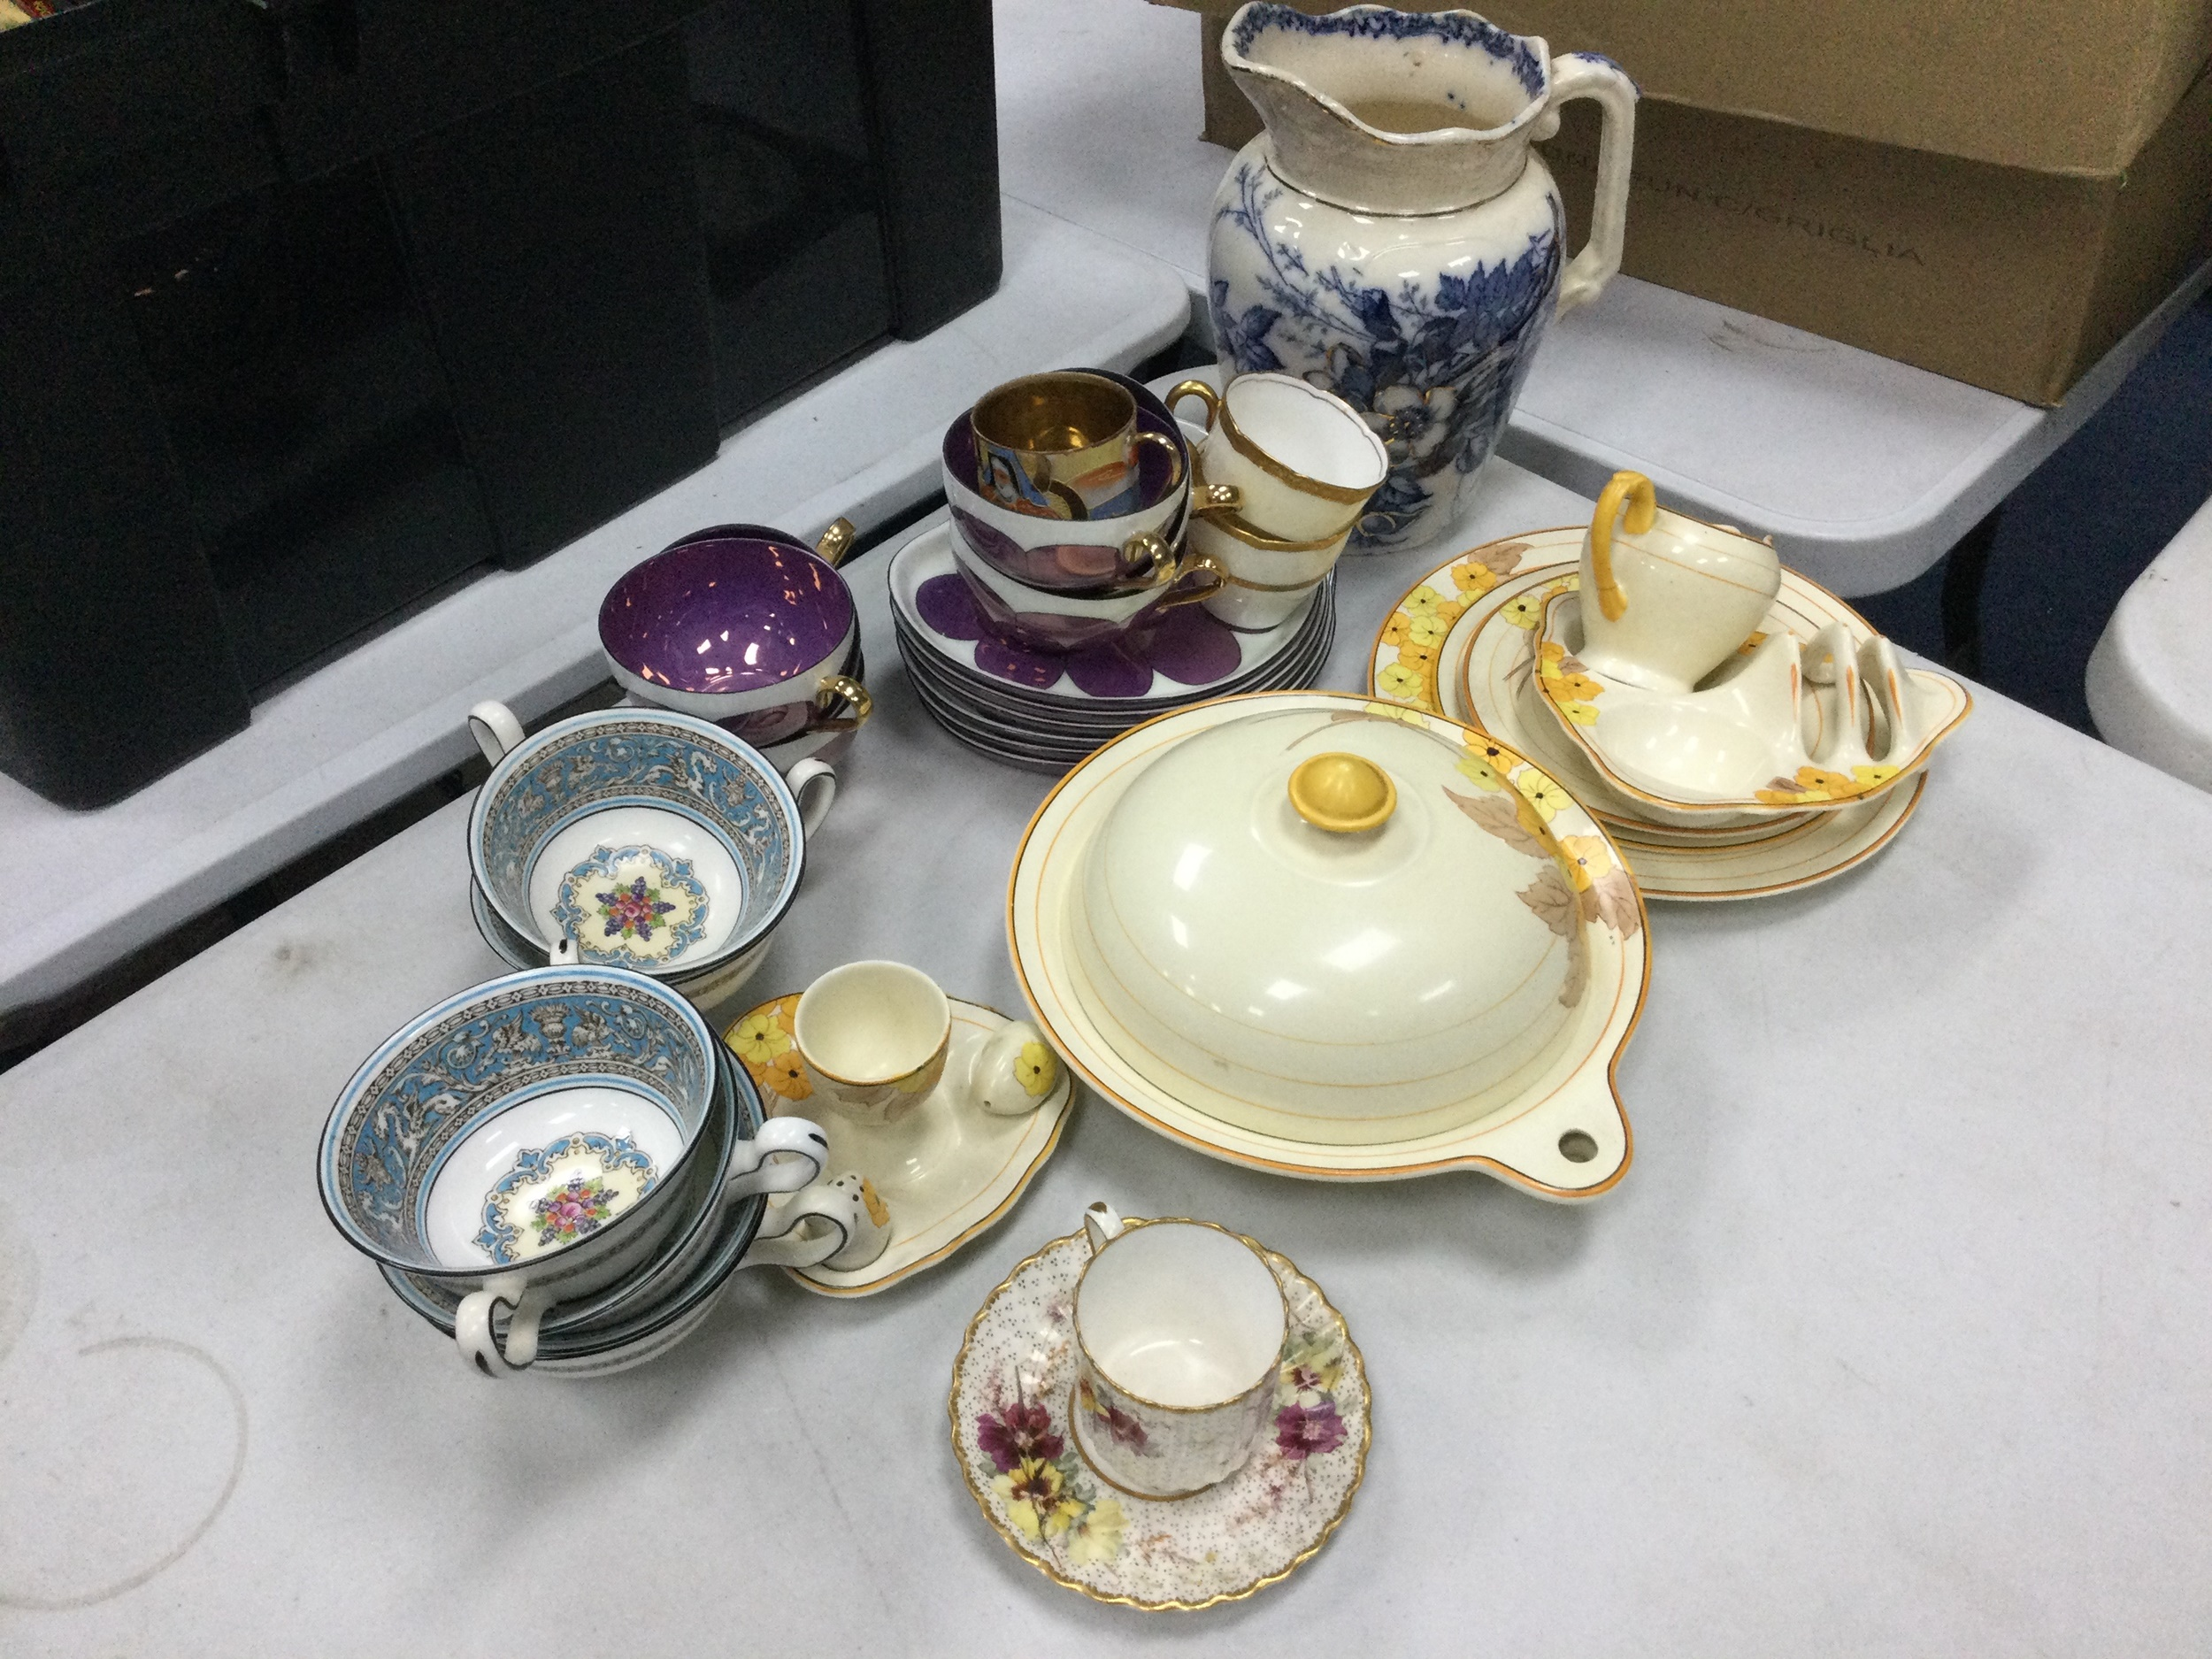 A JAPANESE PART COFFEE SERVICE AND OTHER CERAMICS - Image 2 of 2